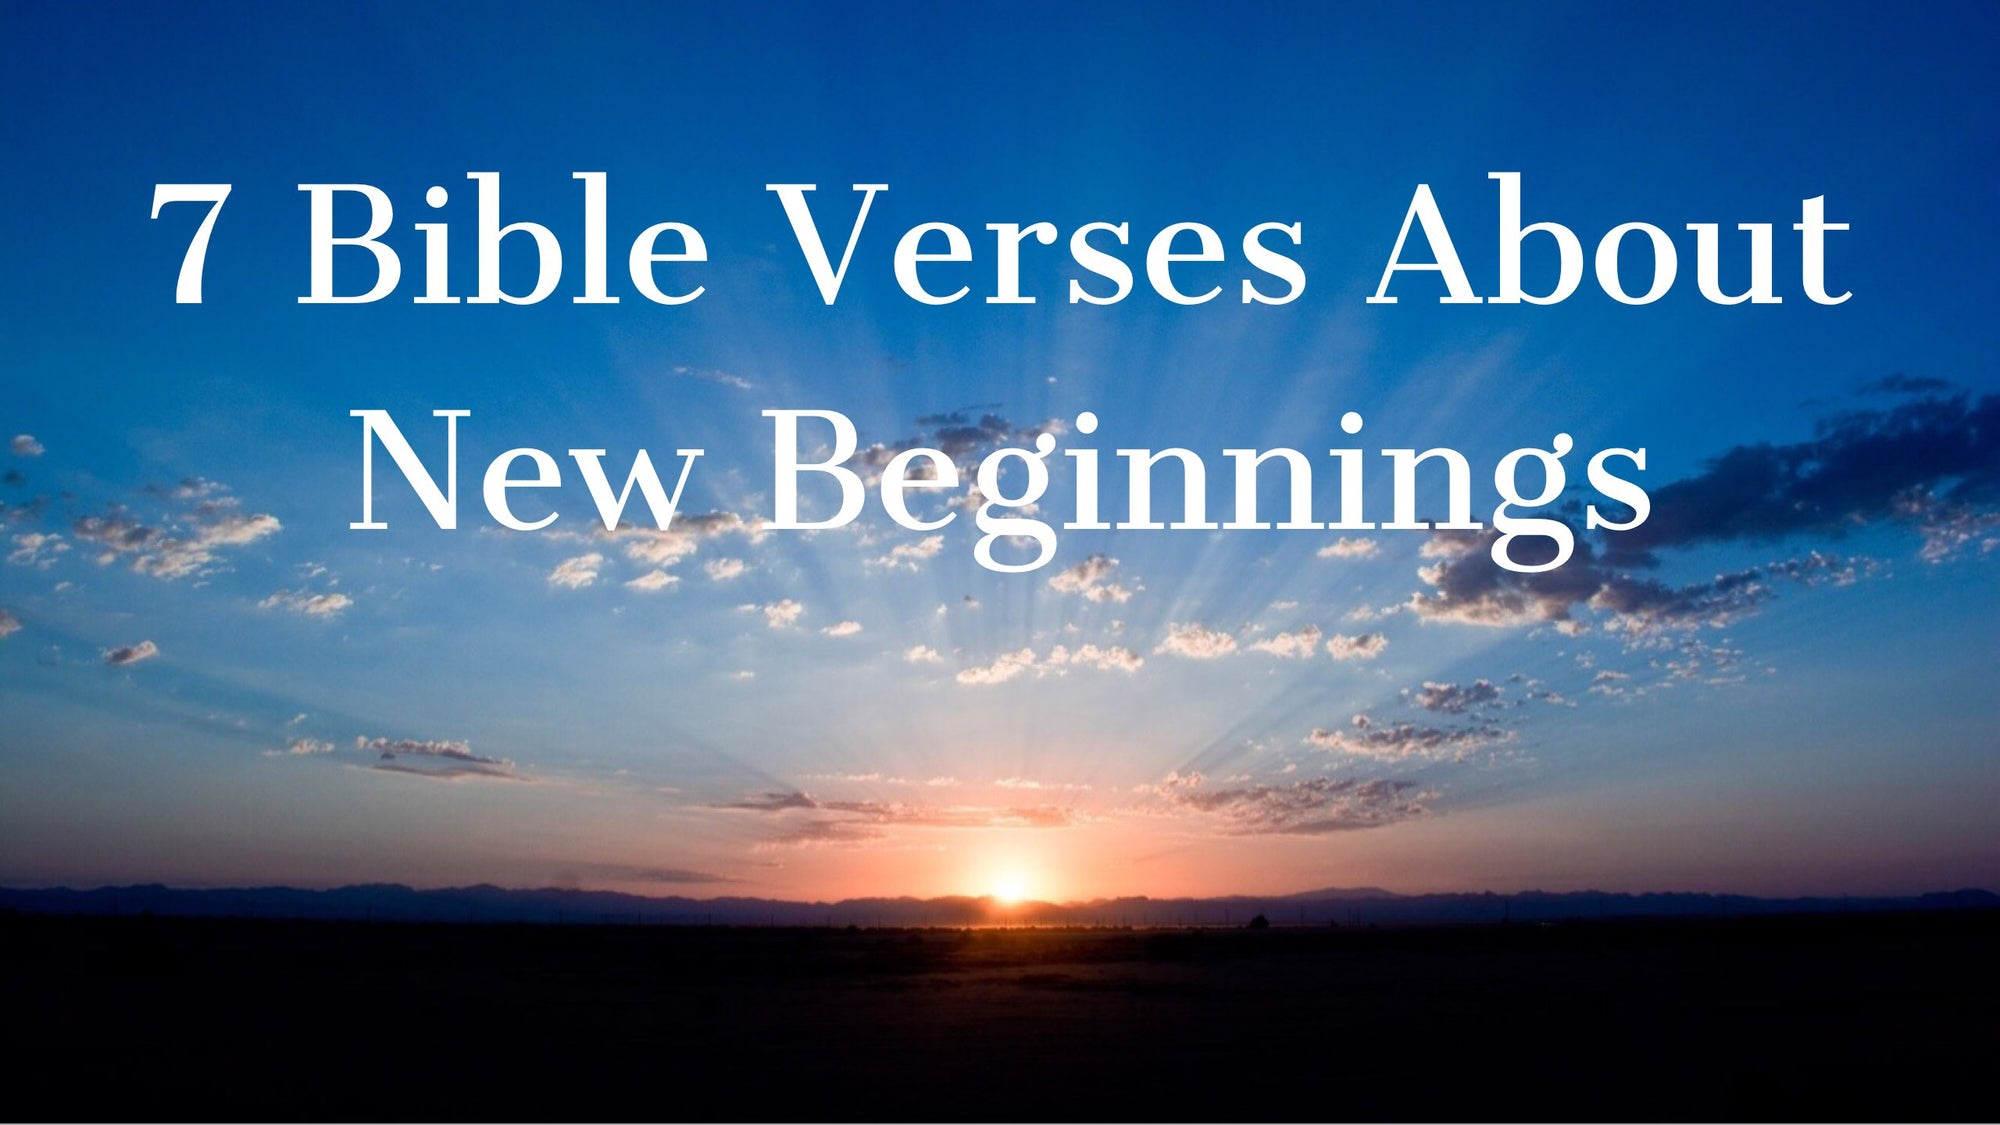 7 Bible Verses About New Beginnings